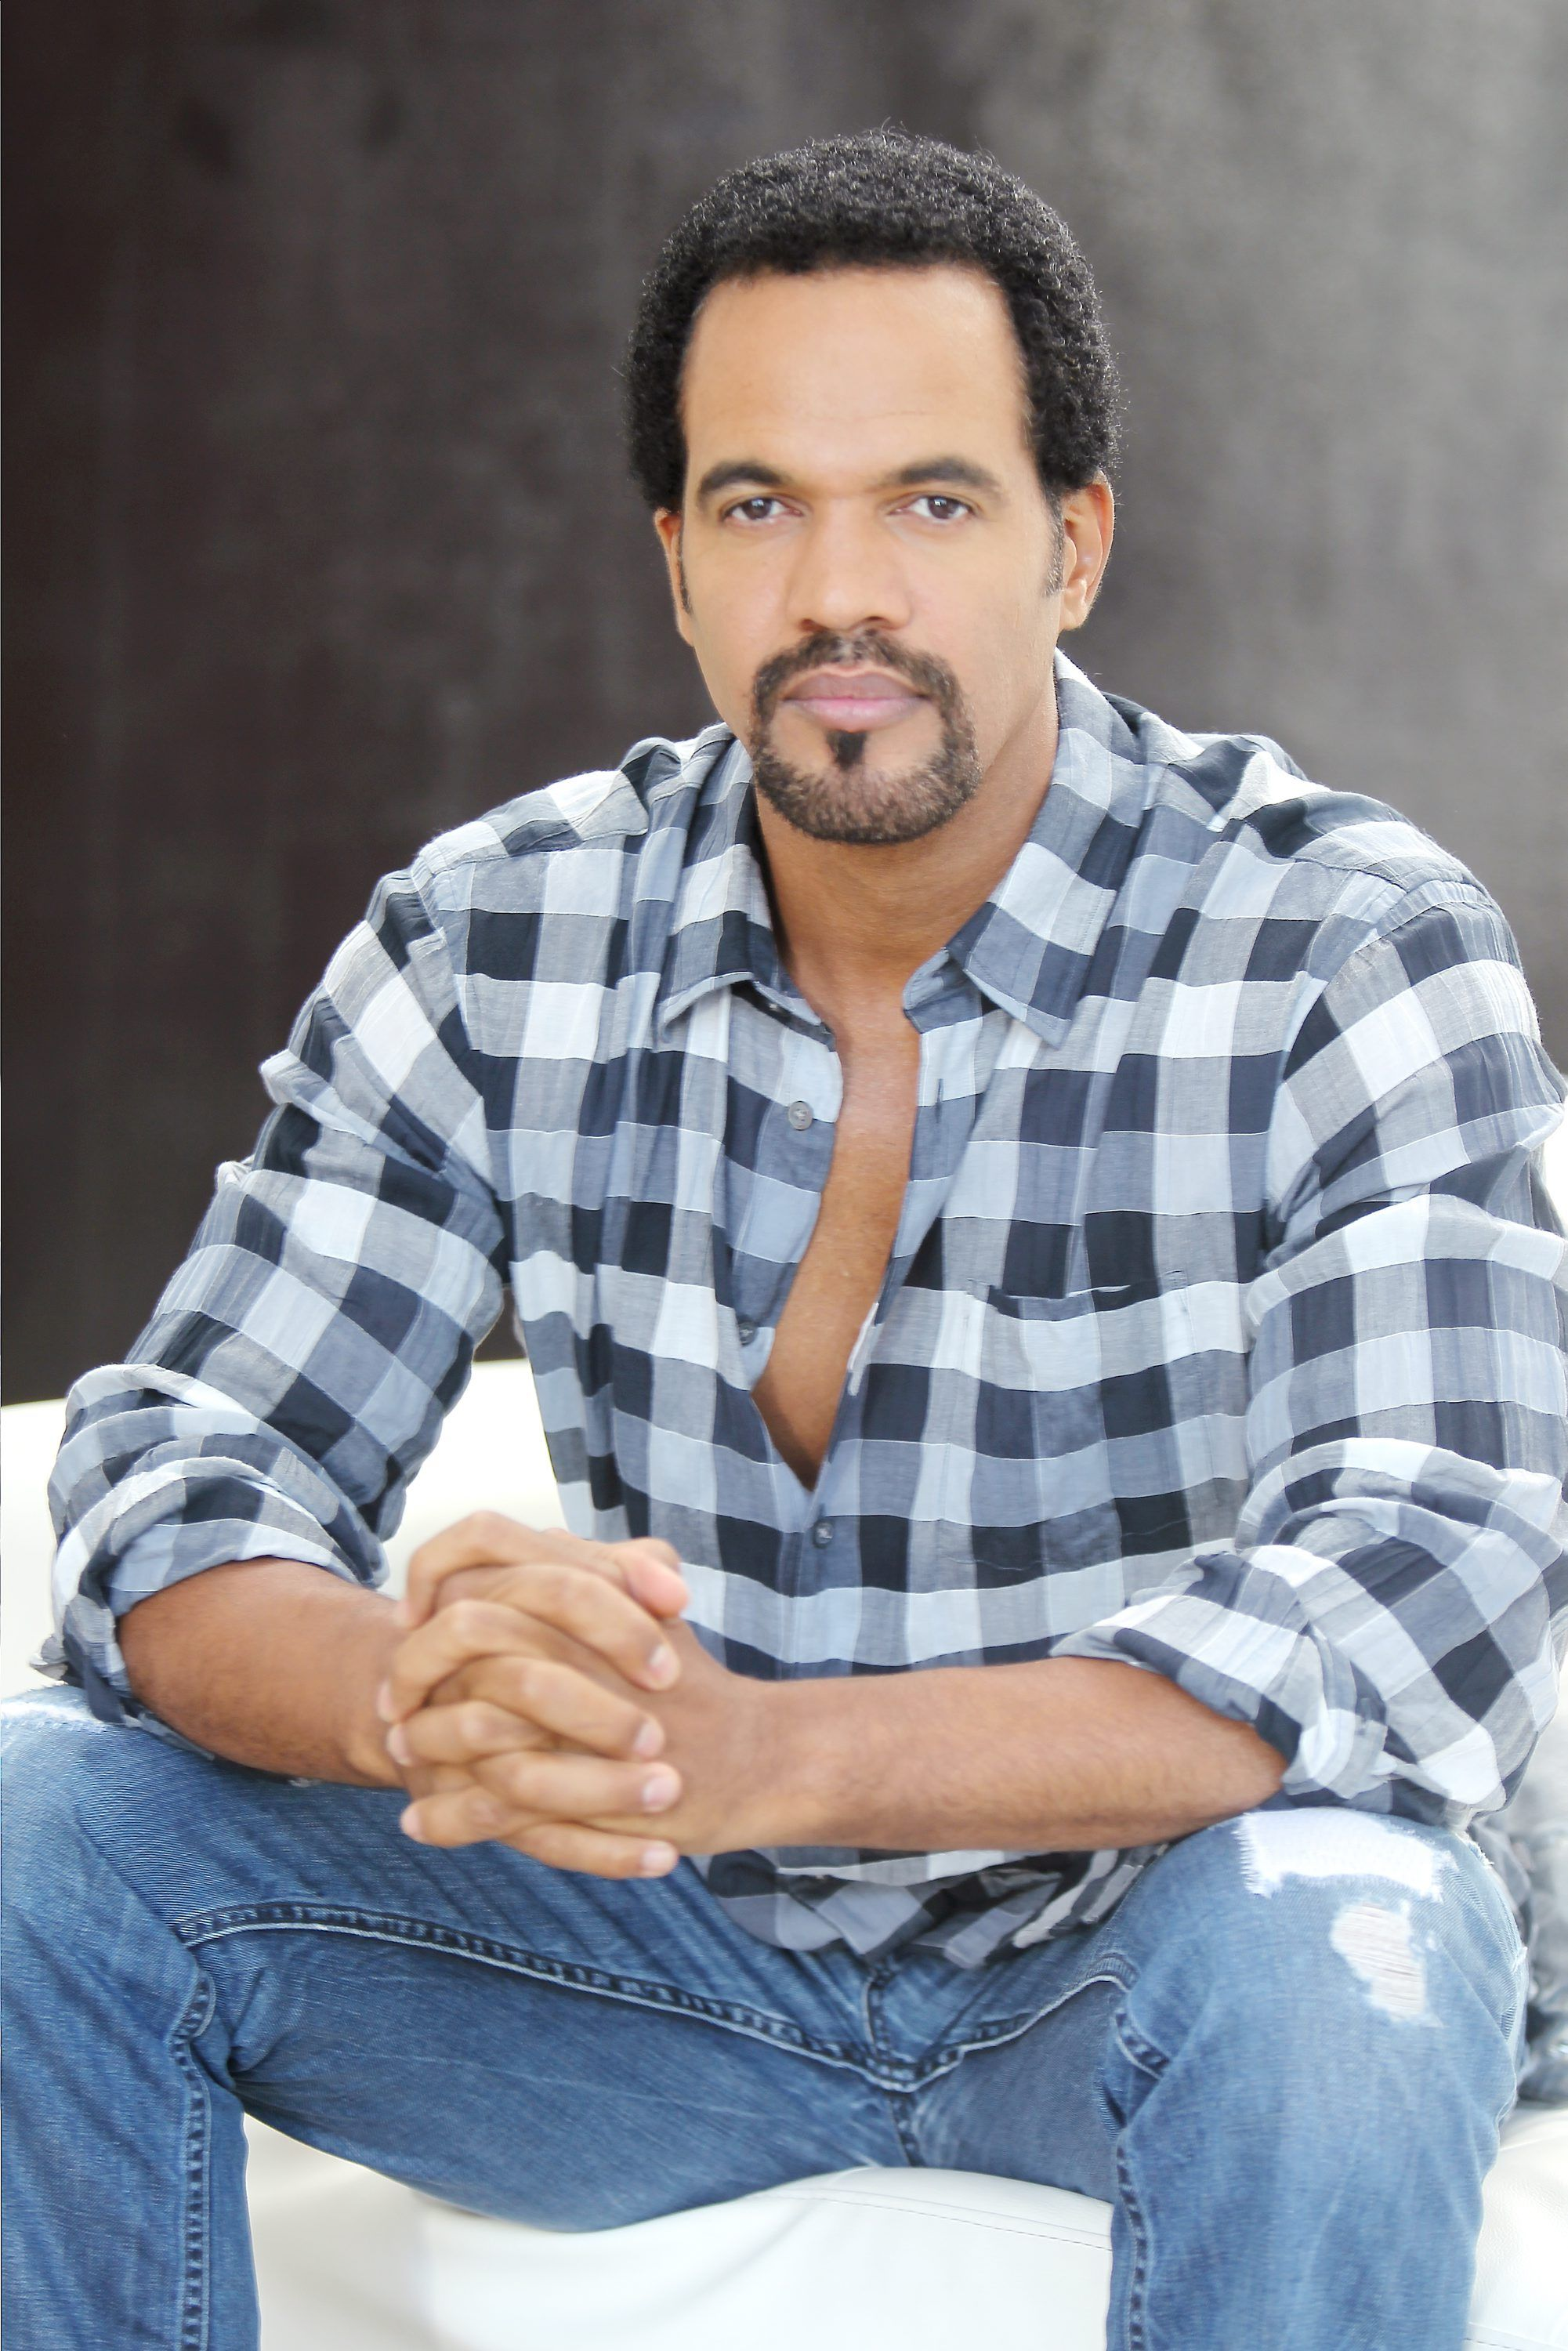 Kristoff St John Neil YampR took to social media to update fans and friends on his condition The twotime Emmywinning actor was reported to be